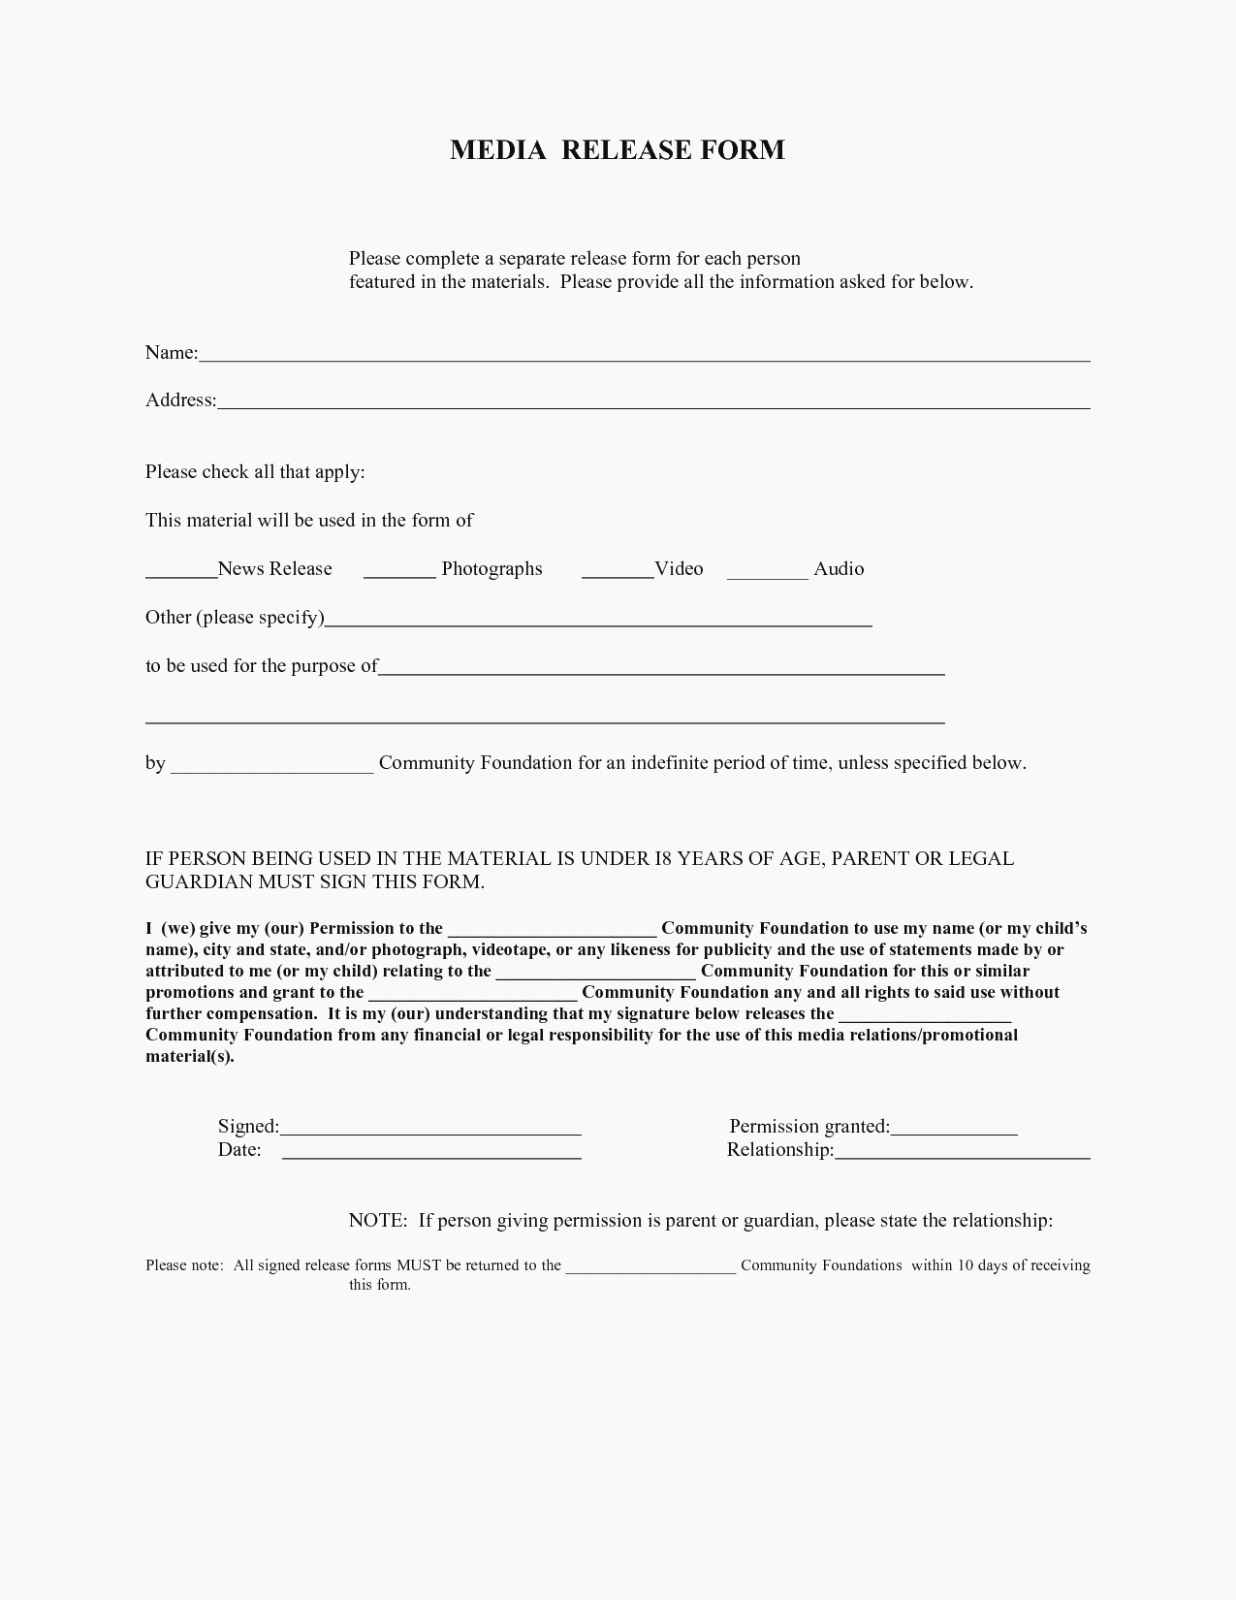 Social Media Release form Template Inspirational Understand the Background